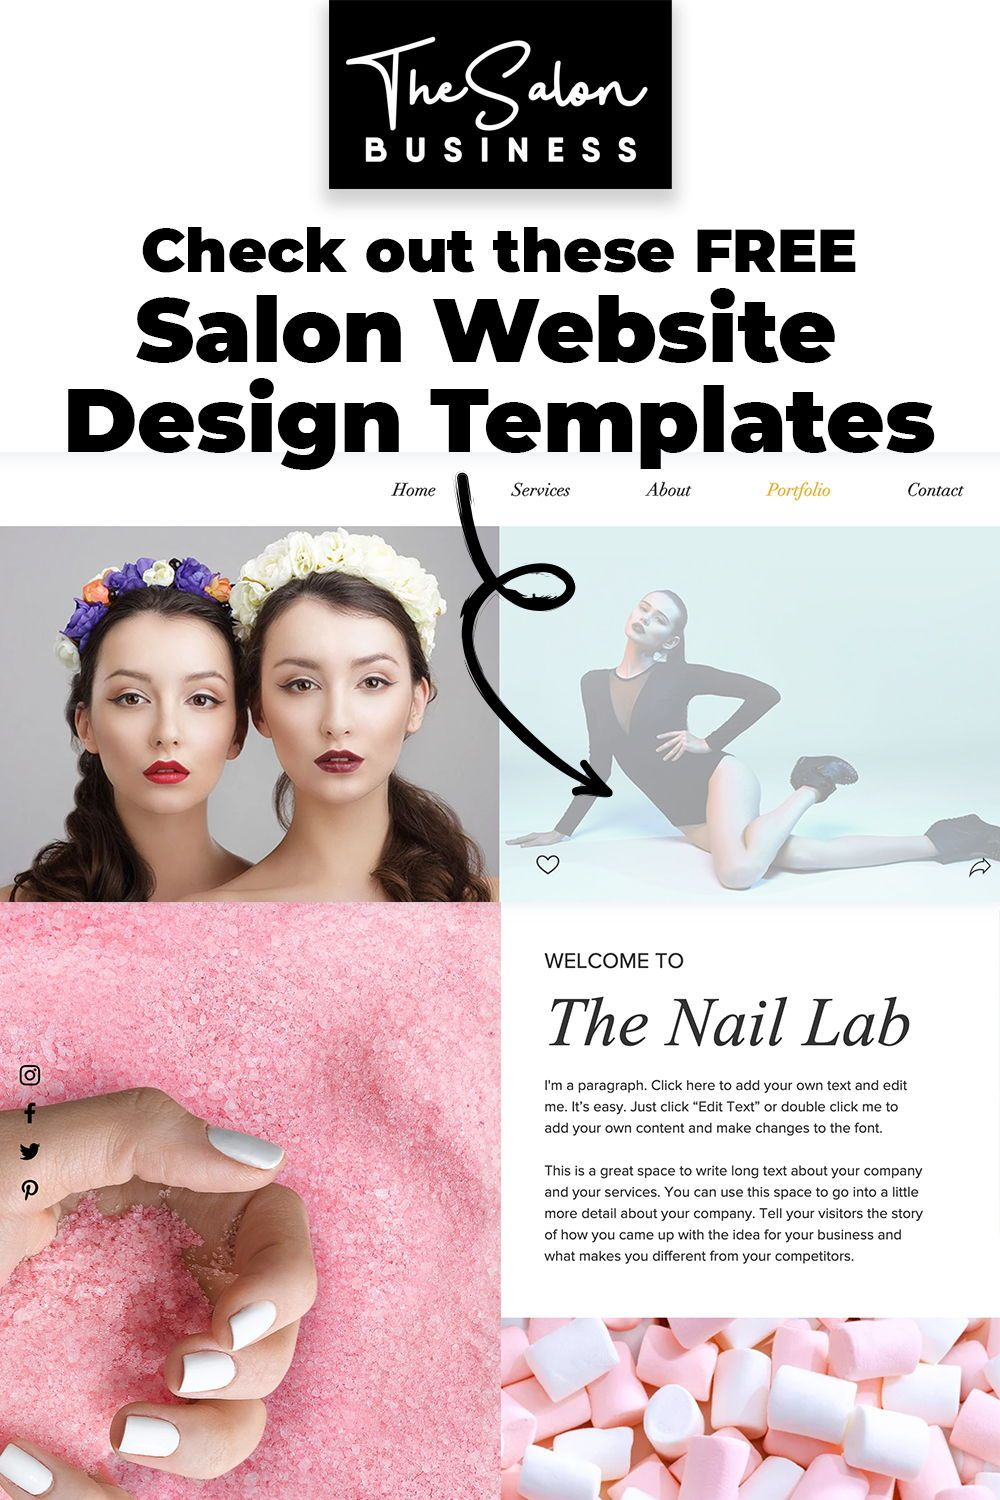 Free Salon Website Teamples. Check out these list of salon website